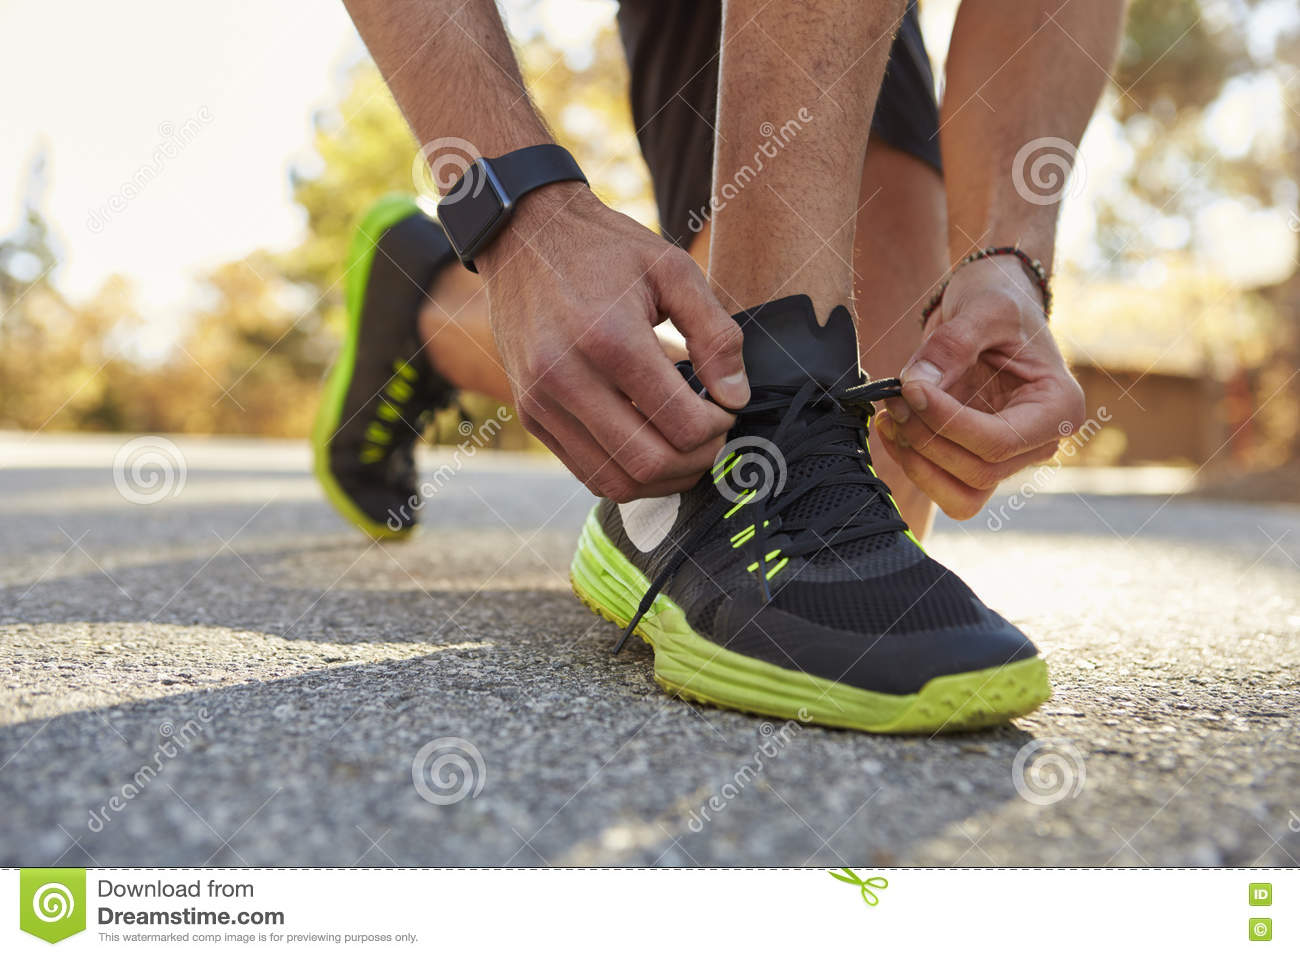 Squatting In Running Shoes